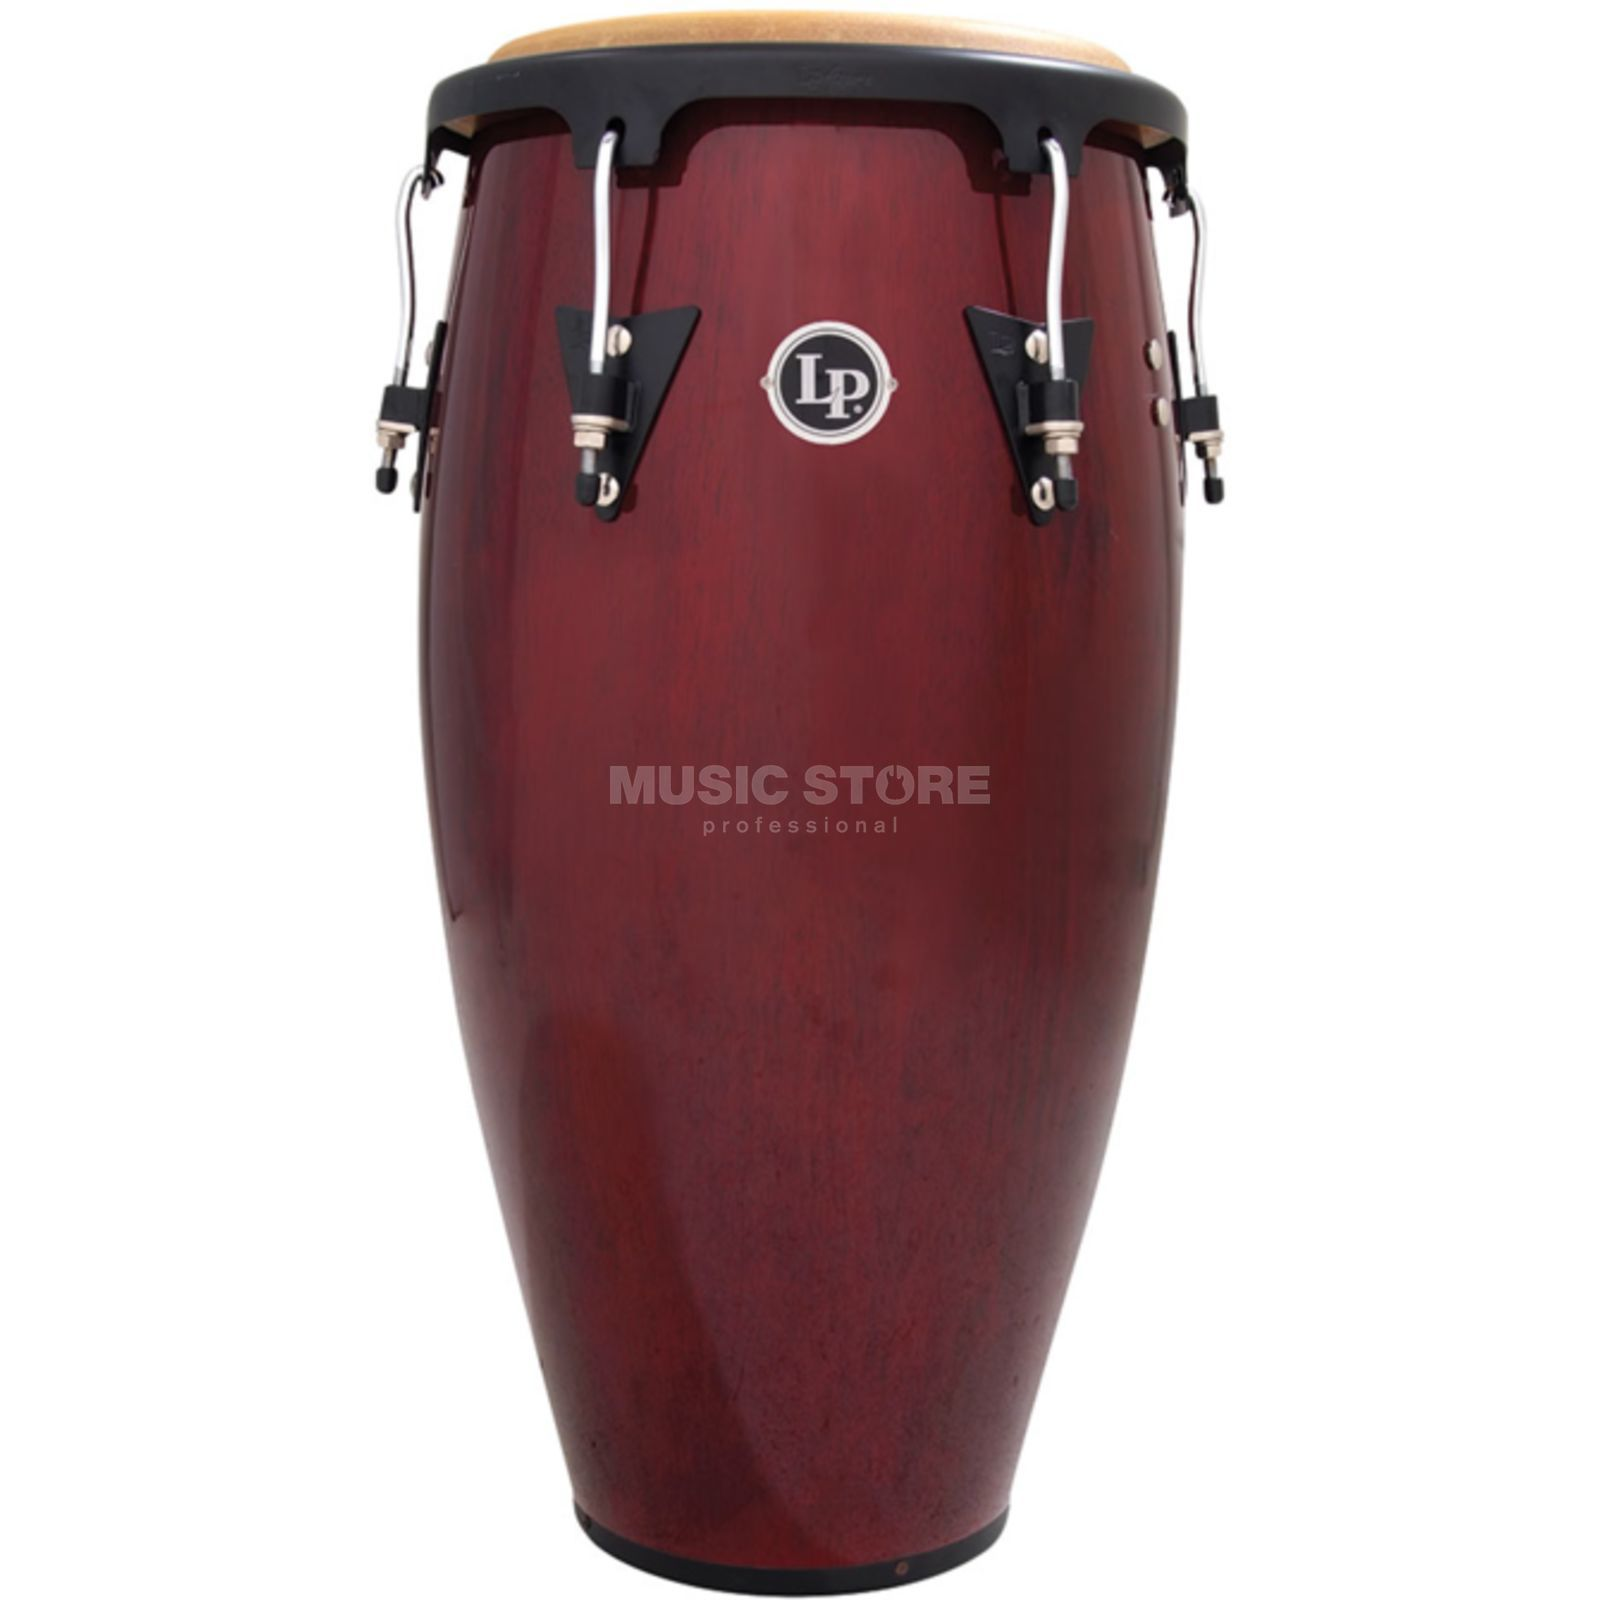 "Latin Percussion Aspire Conga LPA610-DW, 10"" Quinto, Dark Wood #DW Produktbillede"